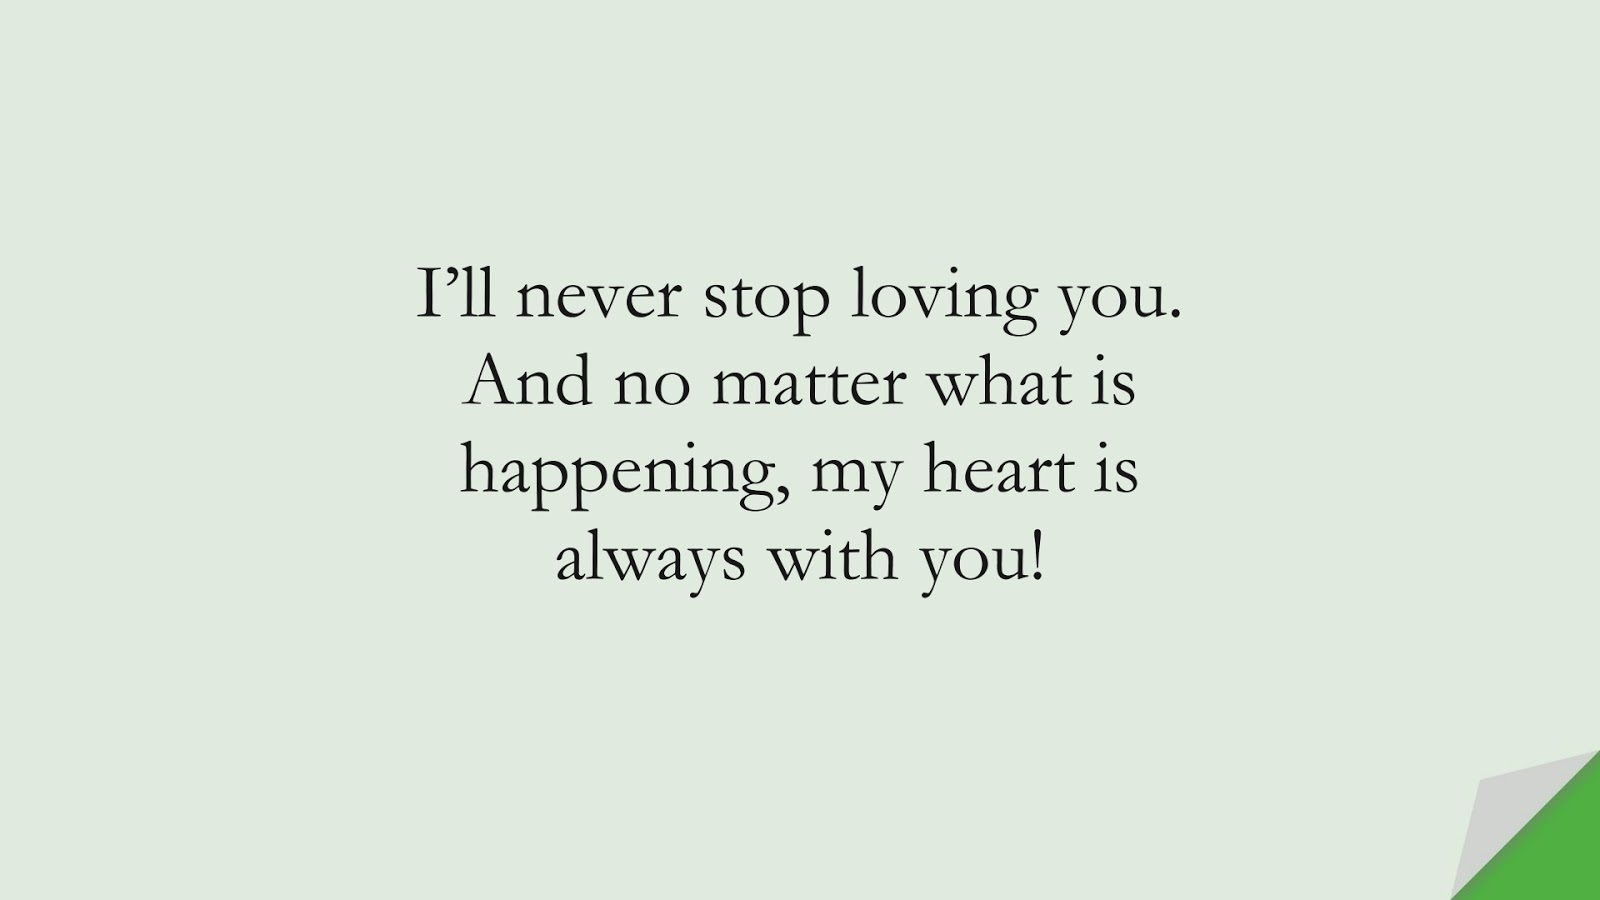 I'll never stop loving you. And no matter what is happening, my heart is always with you!FALSE